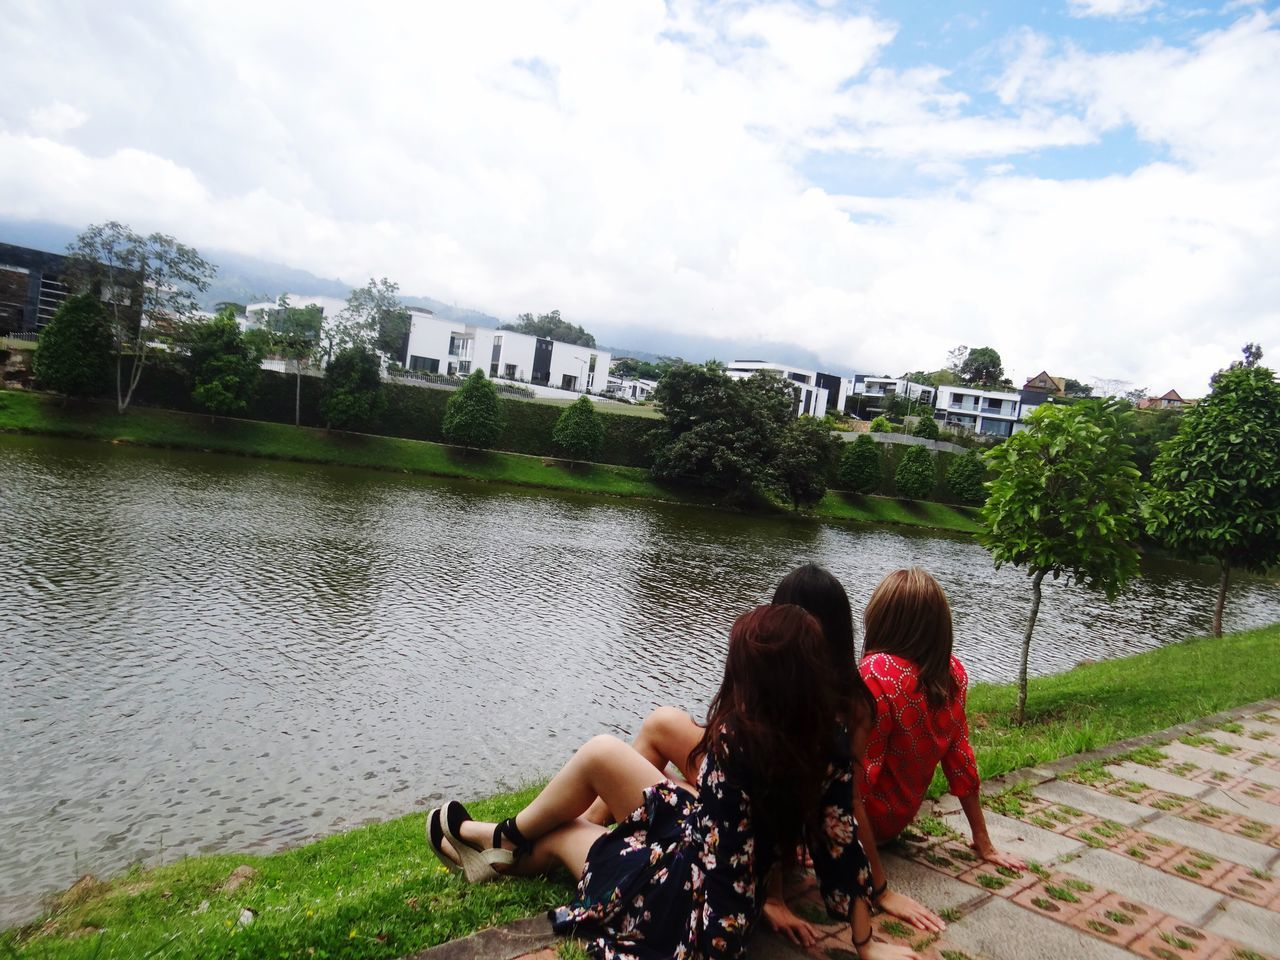 building exterior, real people, water, architecture, built structure, rear view, togetherness, day, two people, sitting, leisure activity, sky, cloud - sky, women, river, outdoors, casual clothing, tree, young women, full length, lifestyles, nature, city, young adult, men, grass, friendship, adult, people